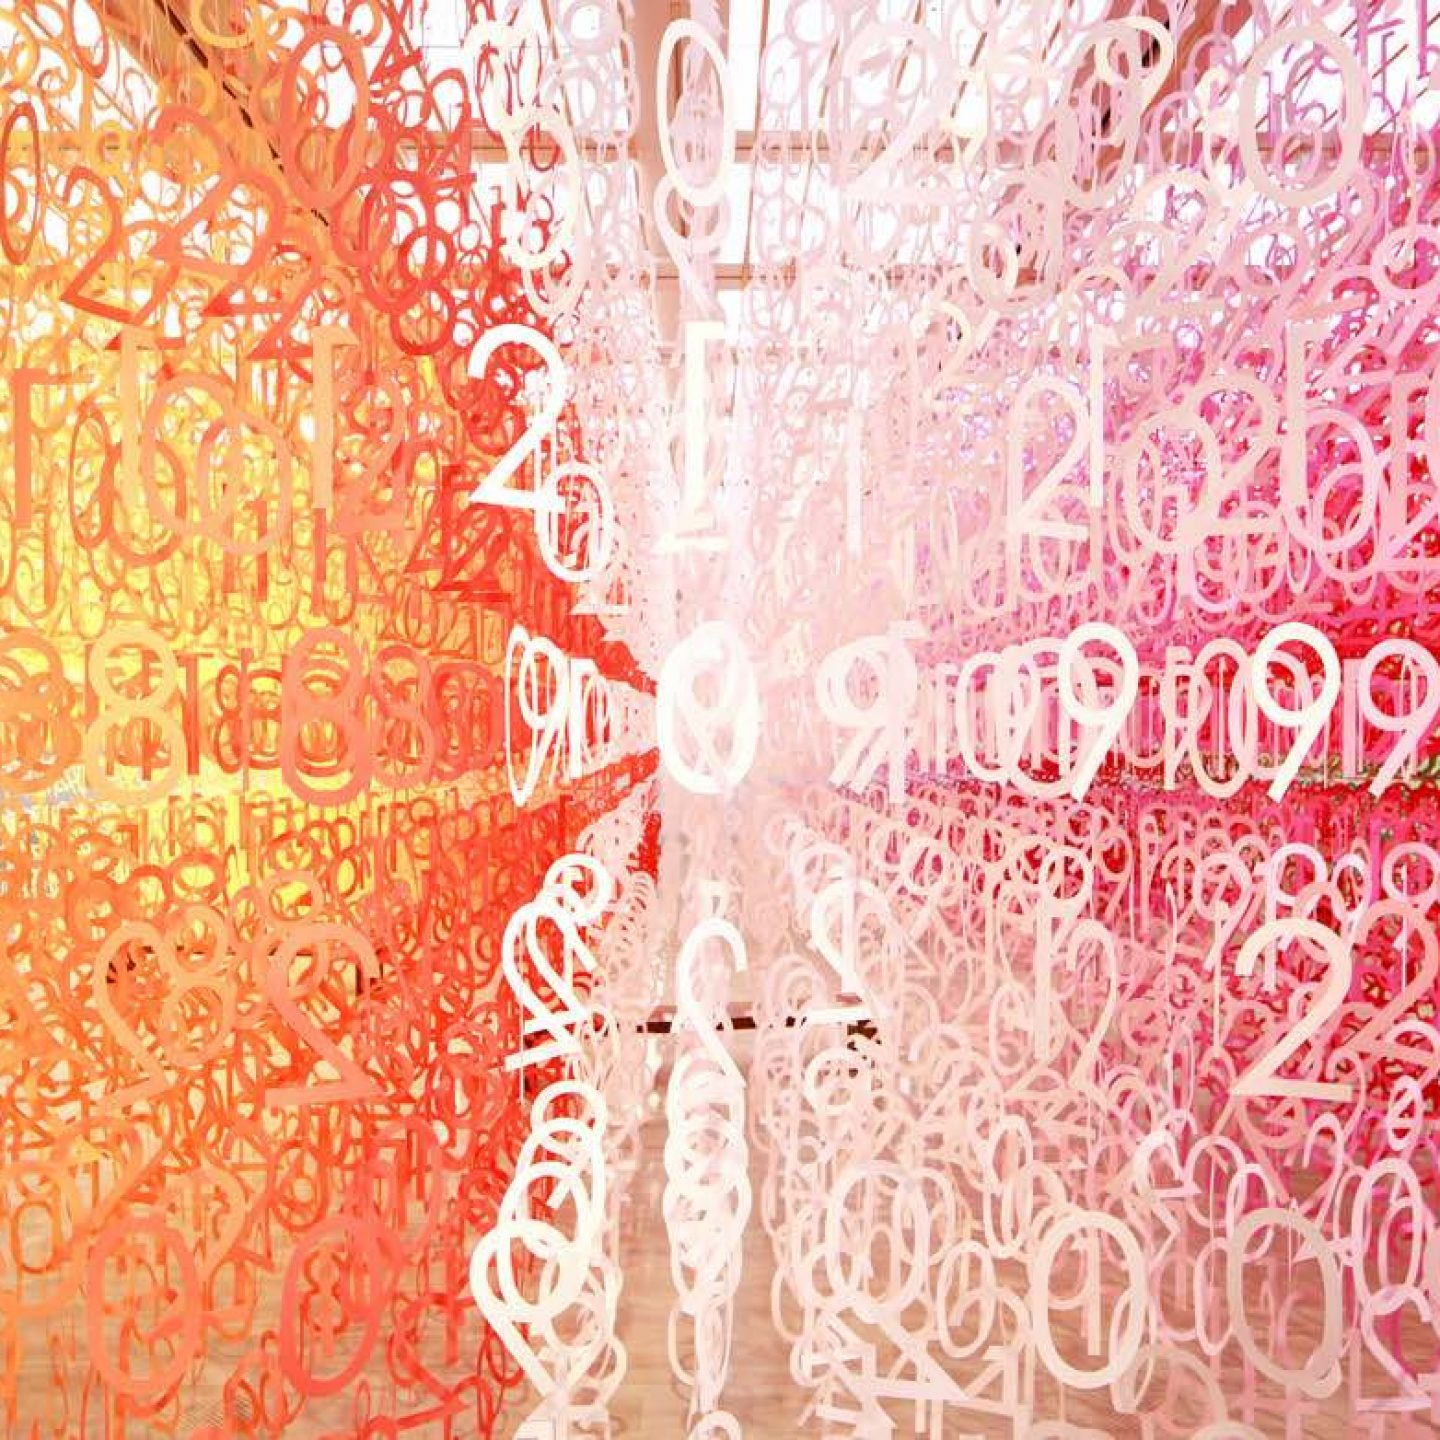 Art_Emmanuelle_Moureaux_Forest_Of_Numbers_06